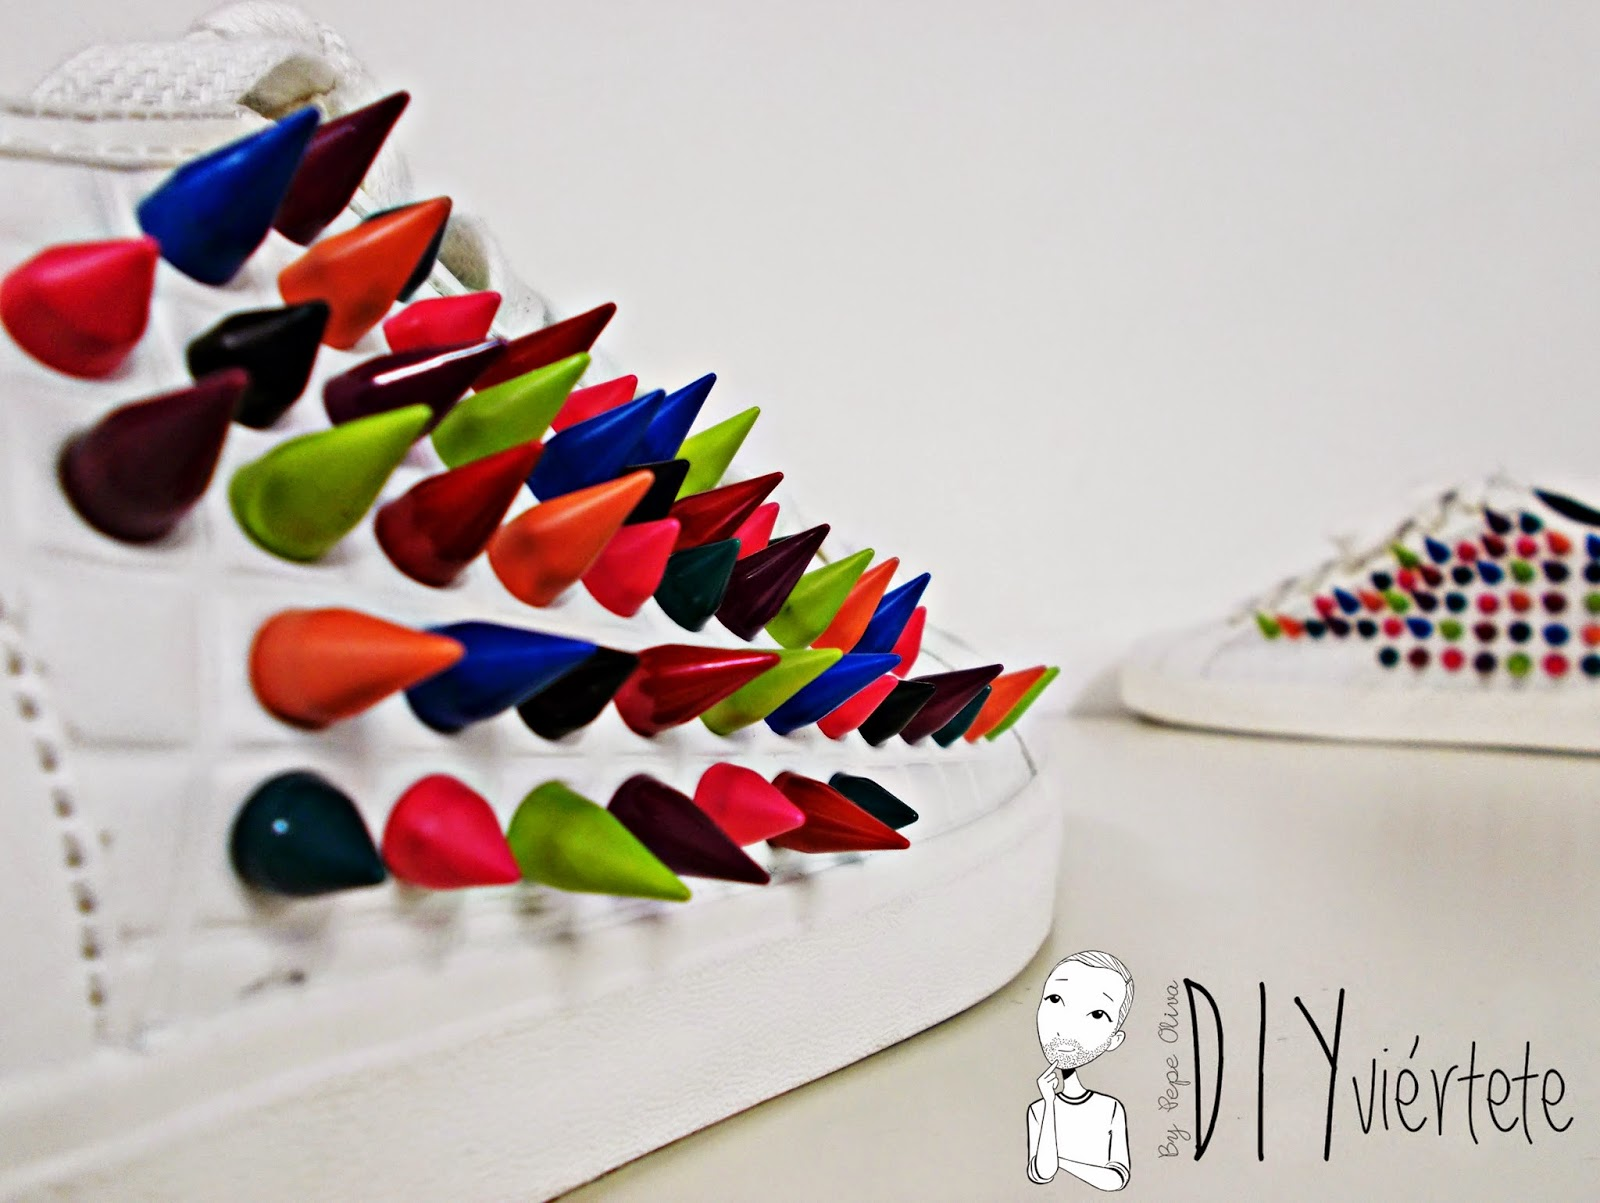 DIY-zapatillas-tunear-customizar-CHRISTIAN-LOUBOUTIN-zapatos-pinchos-esmaltes-pinta uñas-colores-3